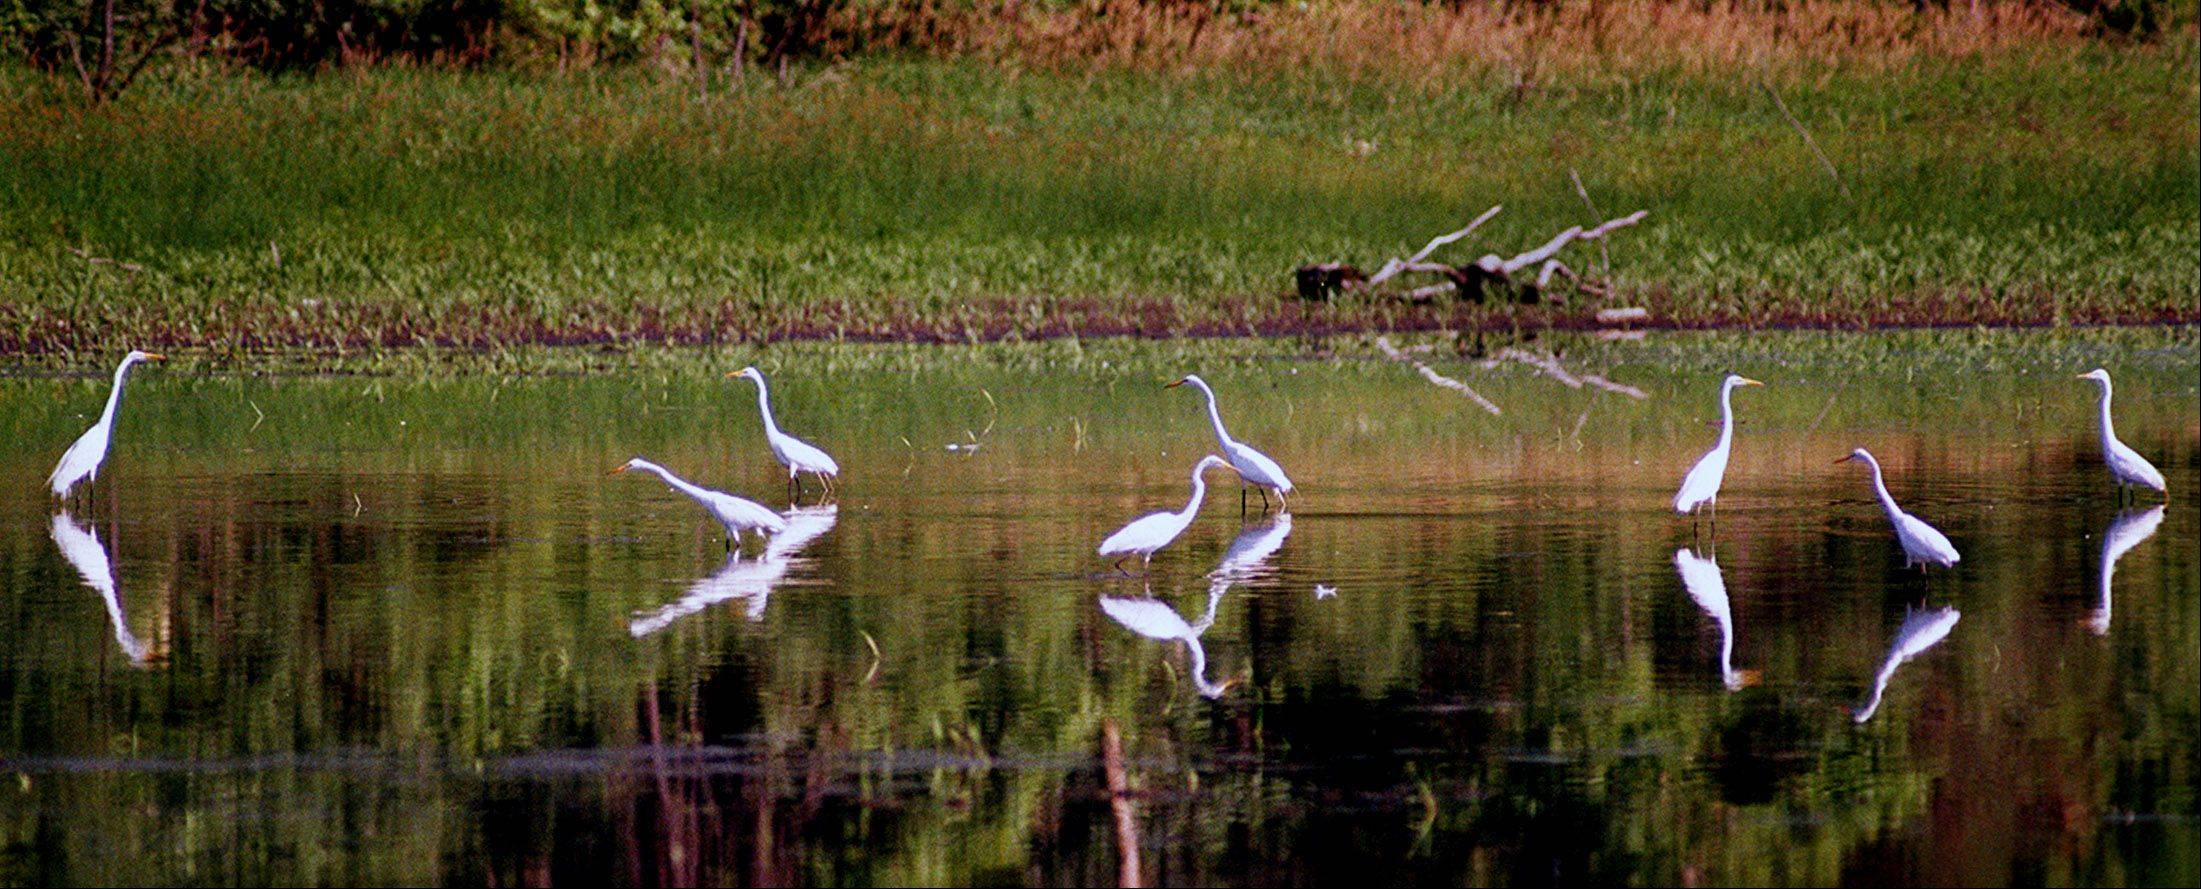 A group of great herons gathers at the wildlife refuge at Crabtree Nature Center in Barrington.